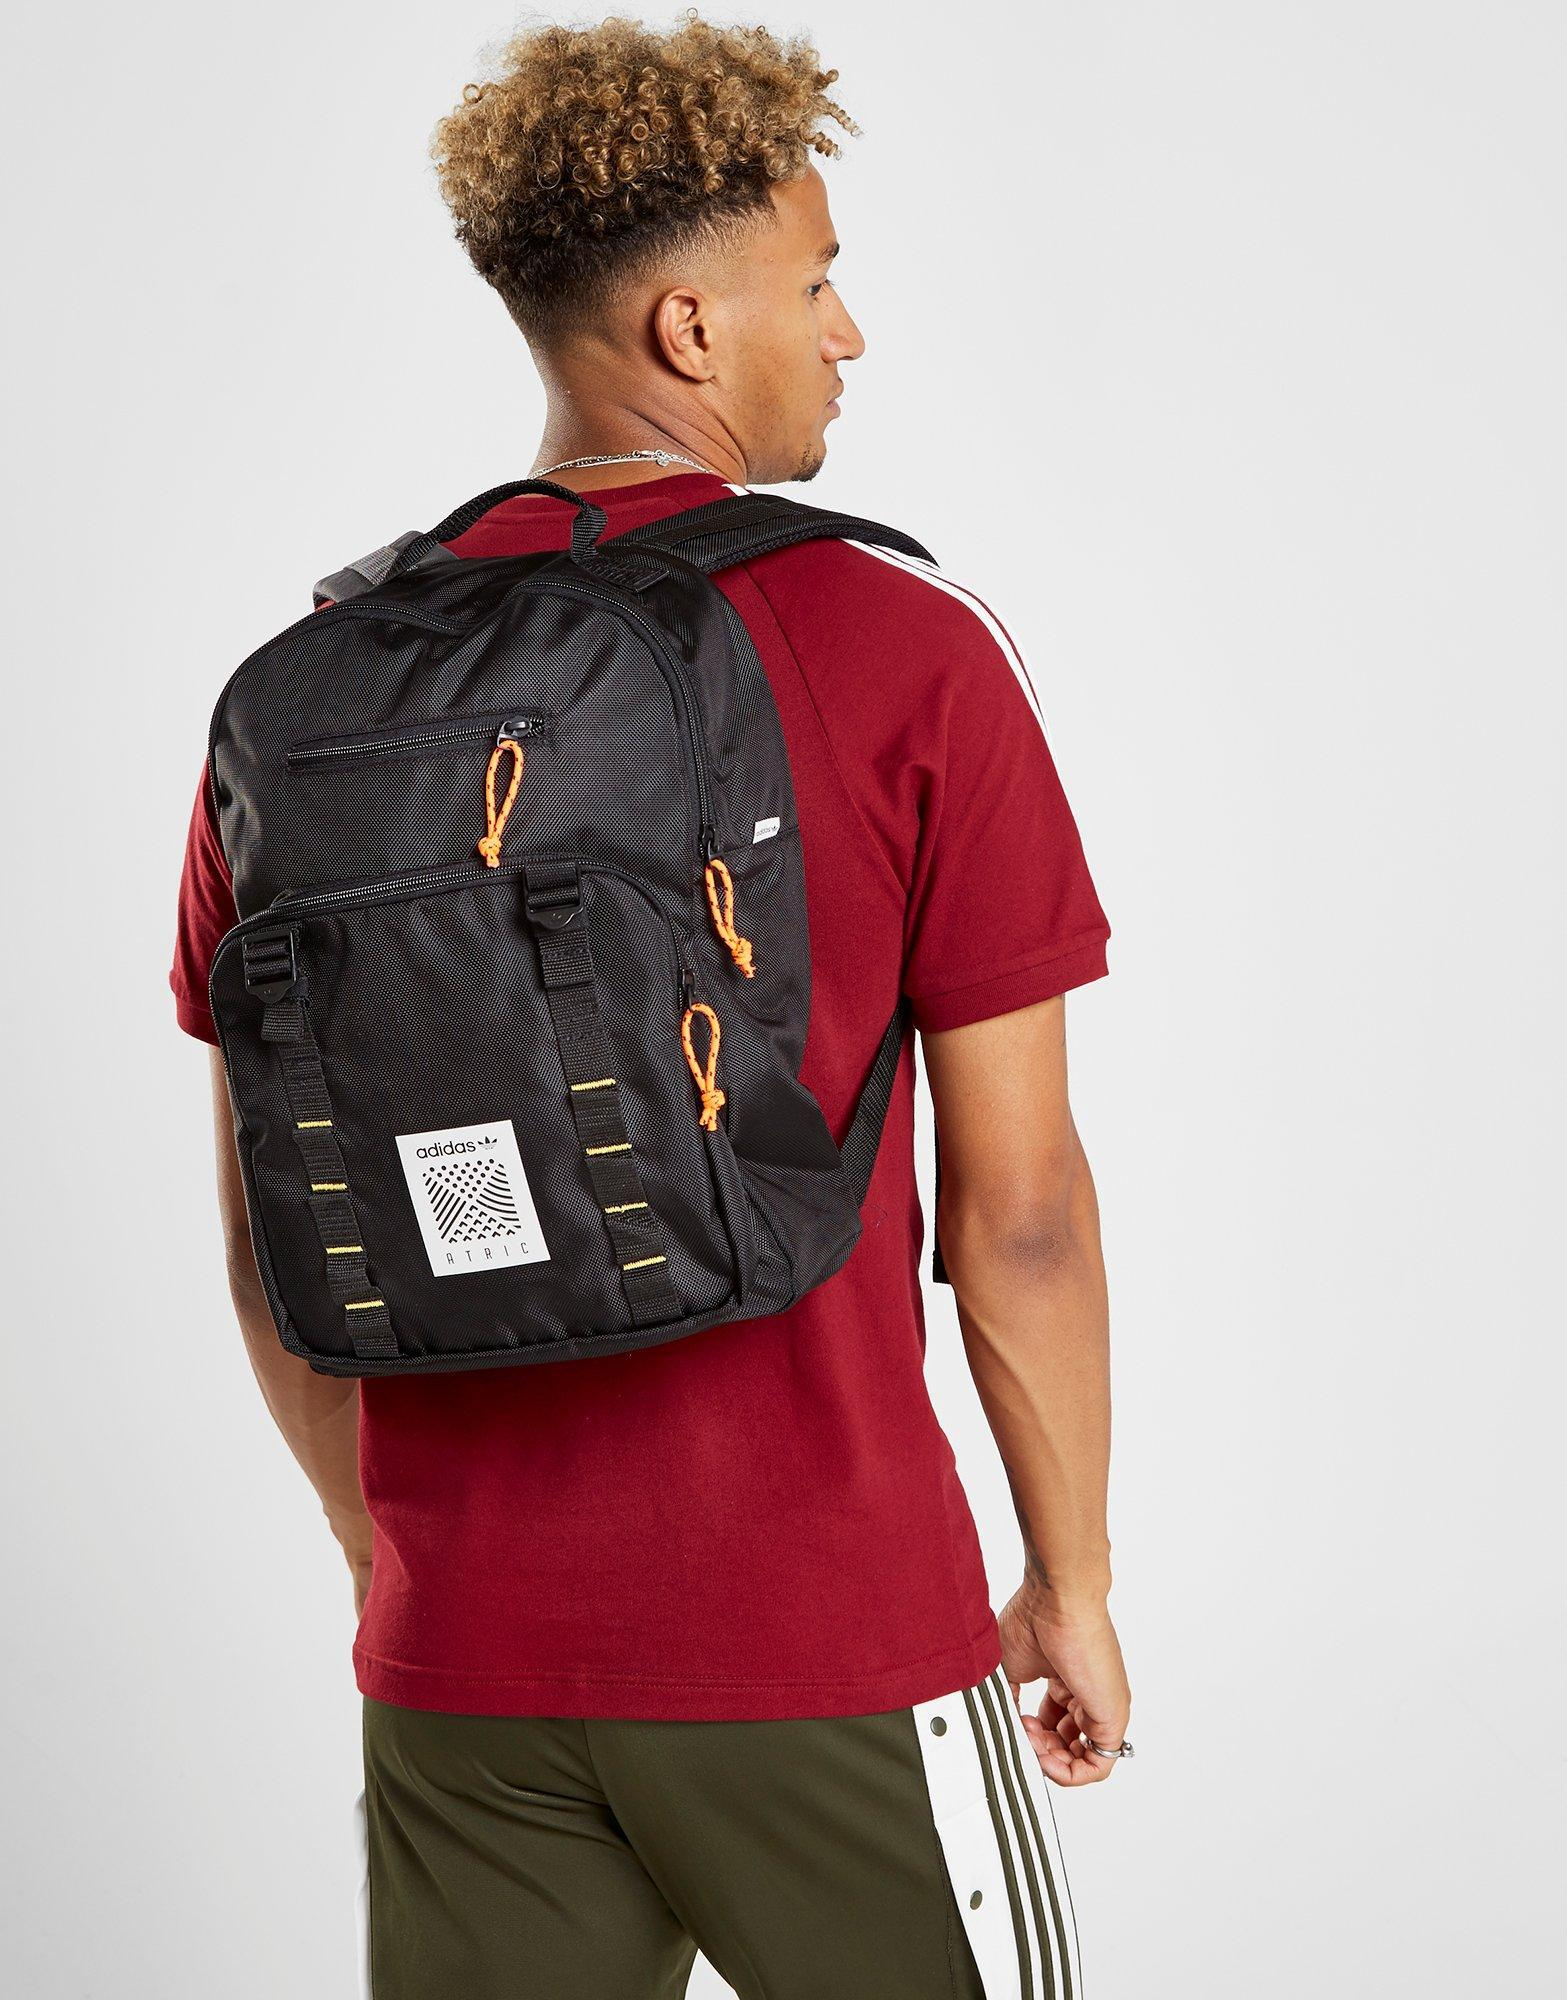 adidas Atric Backpack Small in Black for Men - Lyst 2b074108c6f0e